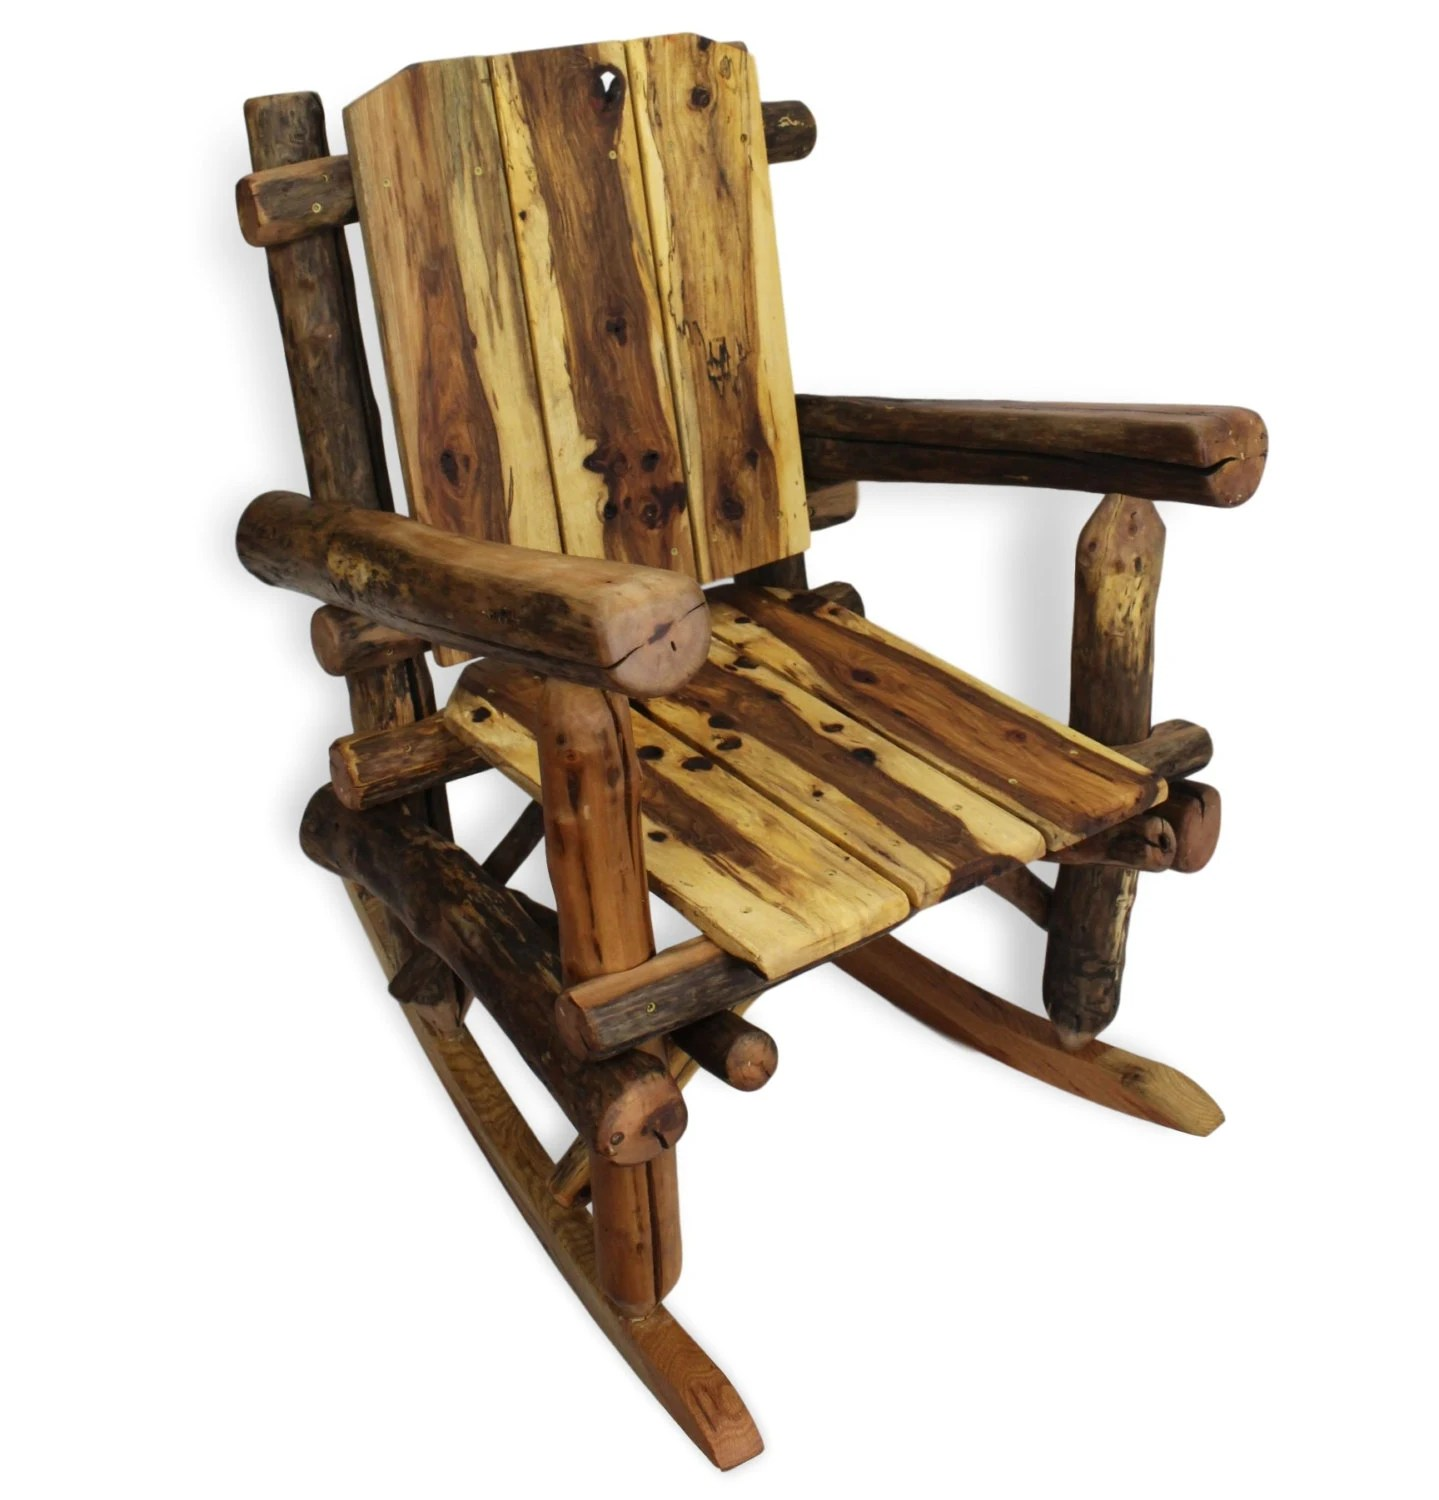 Wood Glider Chair Rustic Rocking Chair Reclaimed Wood Rocking Chair Reclaimed